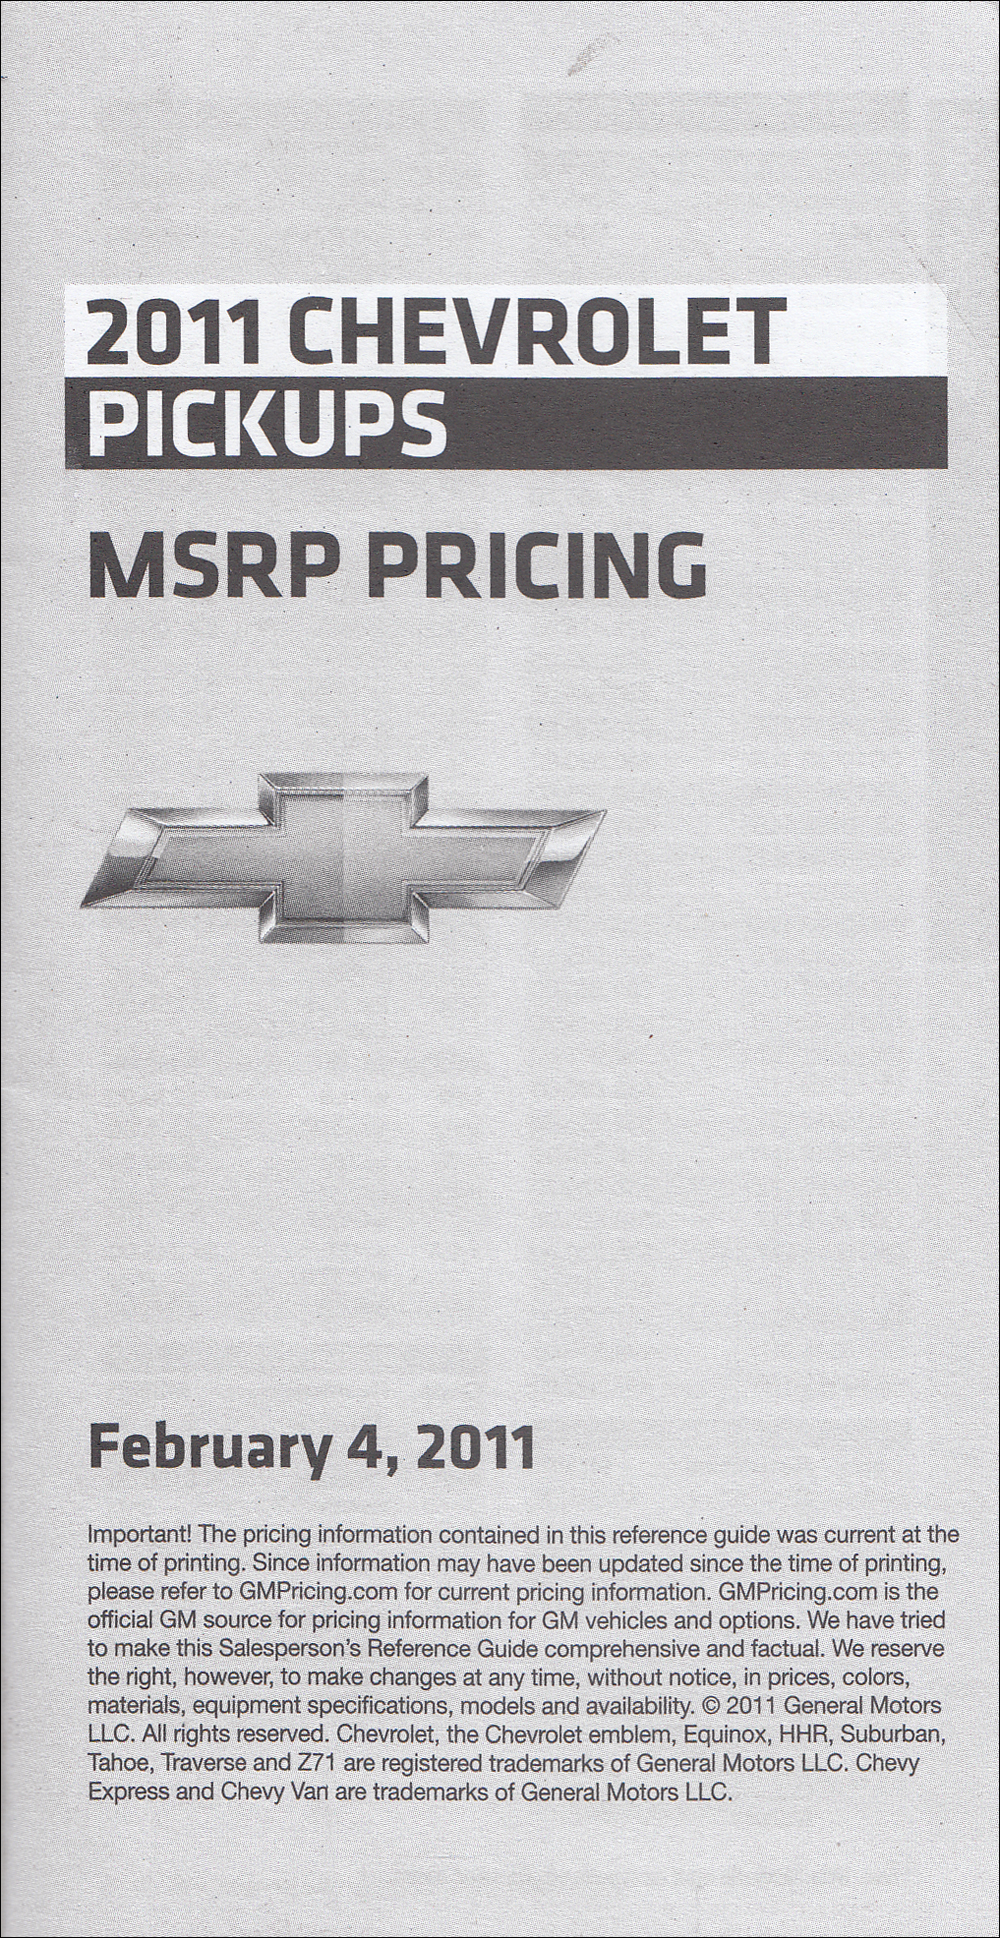 2011 Chevrolet Pickup Price List Dealer Album Original Insert